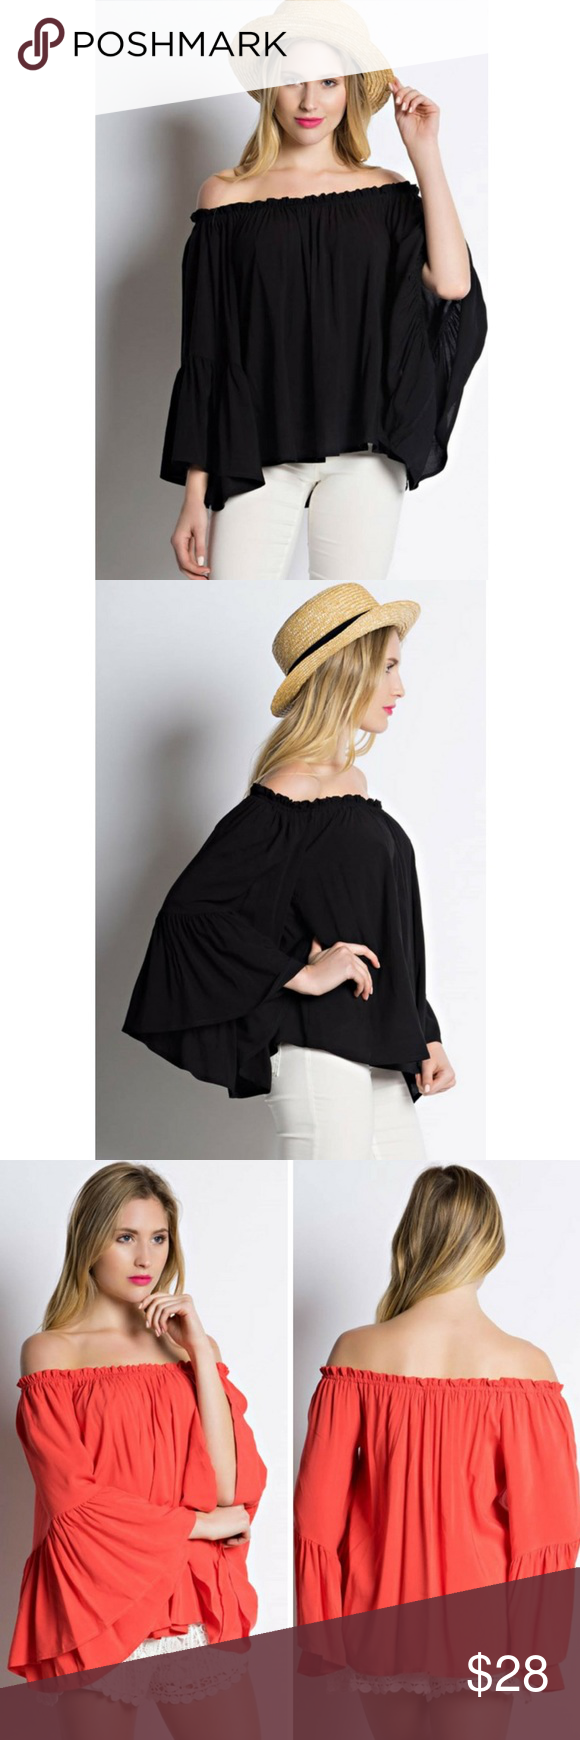 55c0715e43269 Bell Sleeve Off Shoulder Ruffle Top Solid off shoulder bell sleeve ruffle  top. Dress it up with jeans and accessories in heels or dress down with  sandals ...